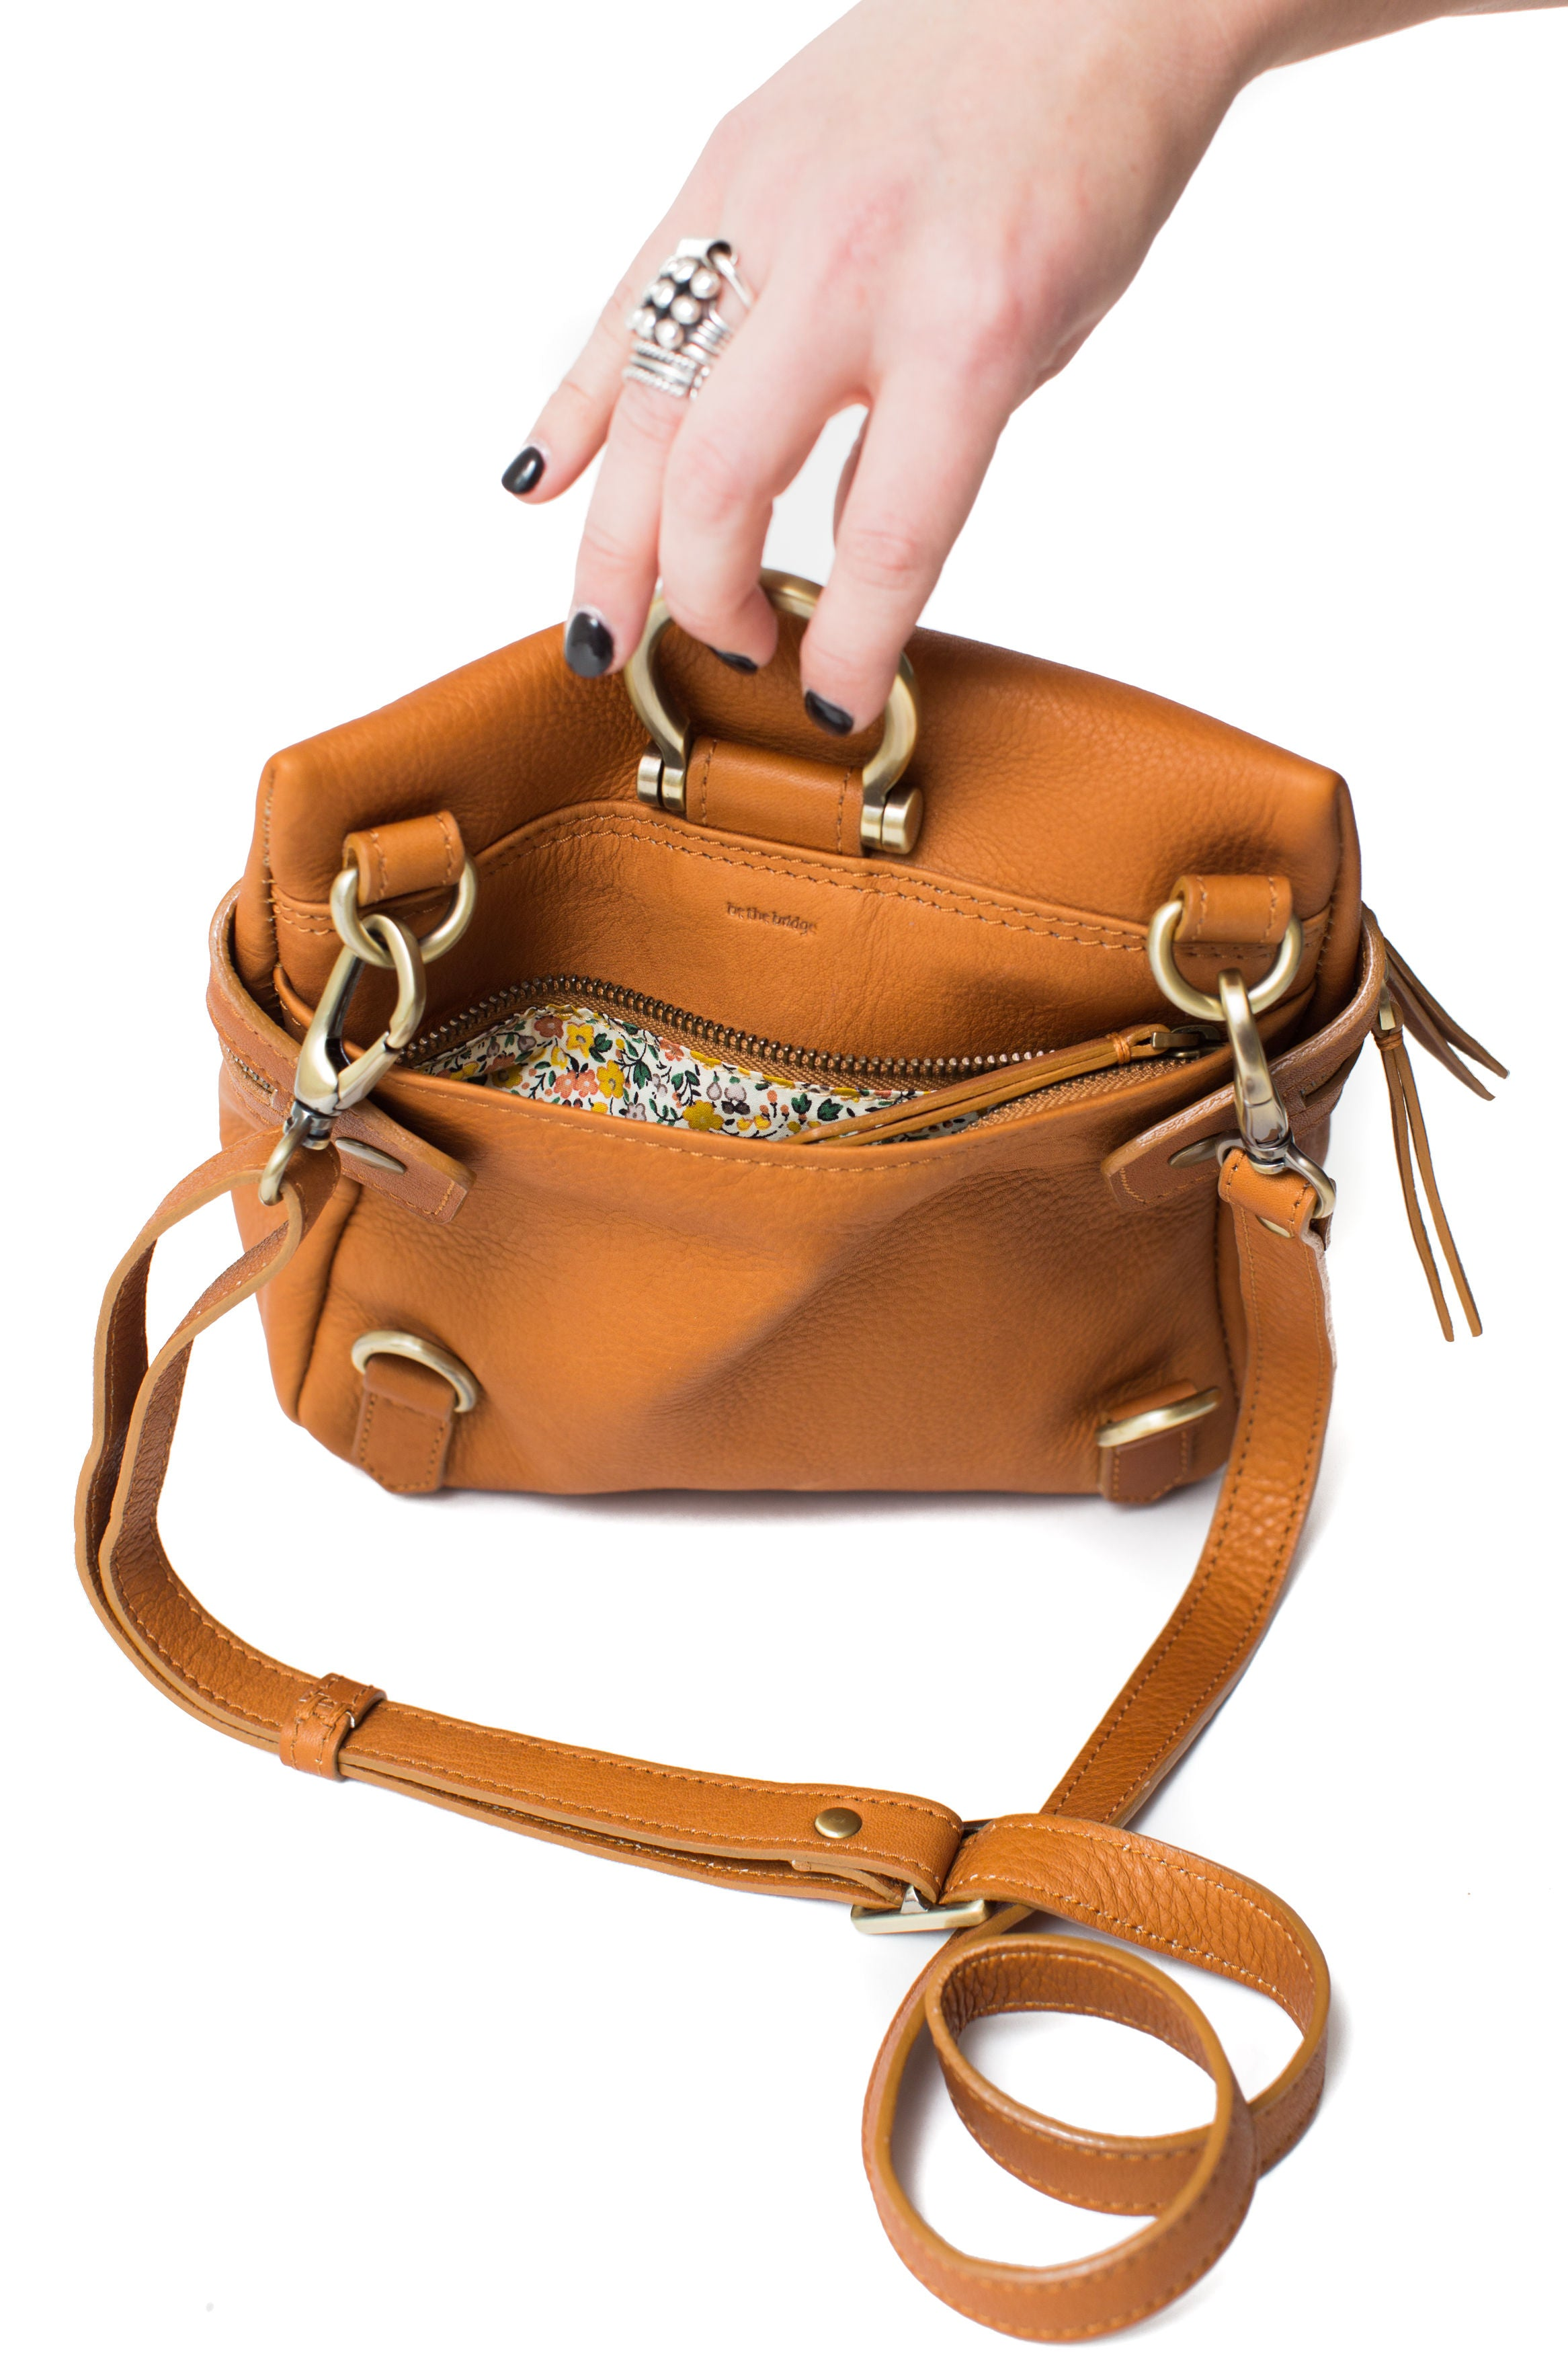 Sapahn - Pepper Leather Crossbody Convertible Bag (Whiskey)